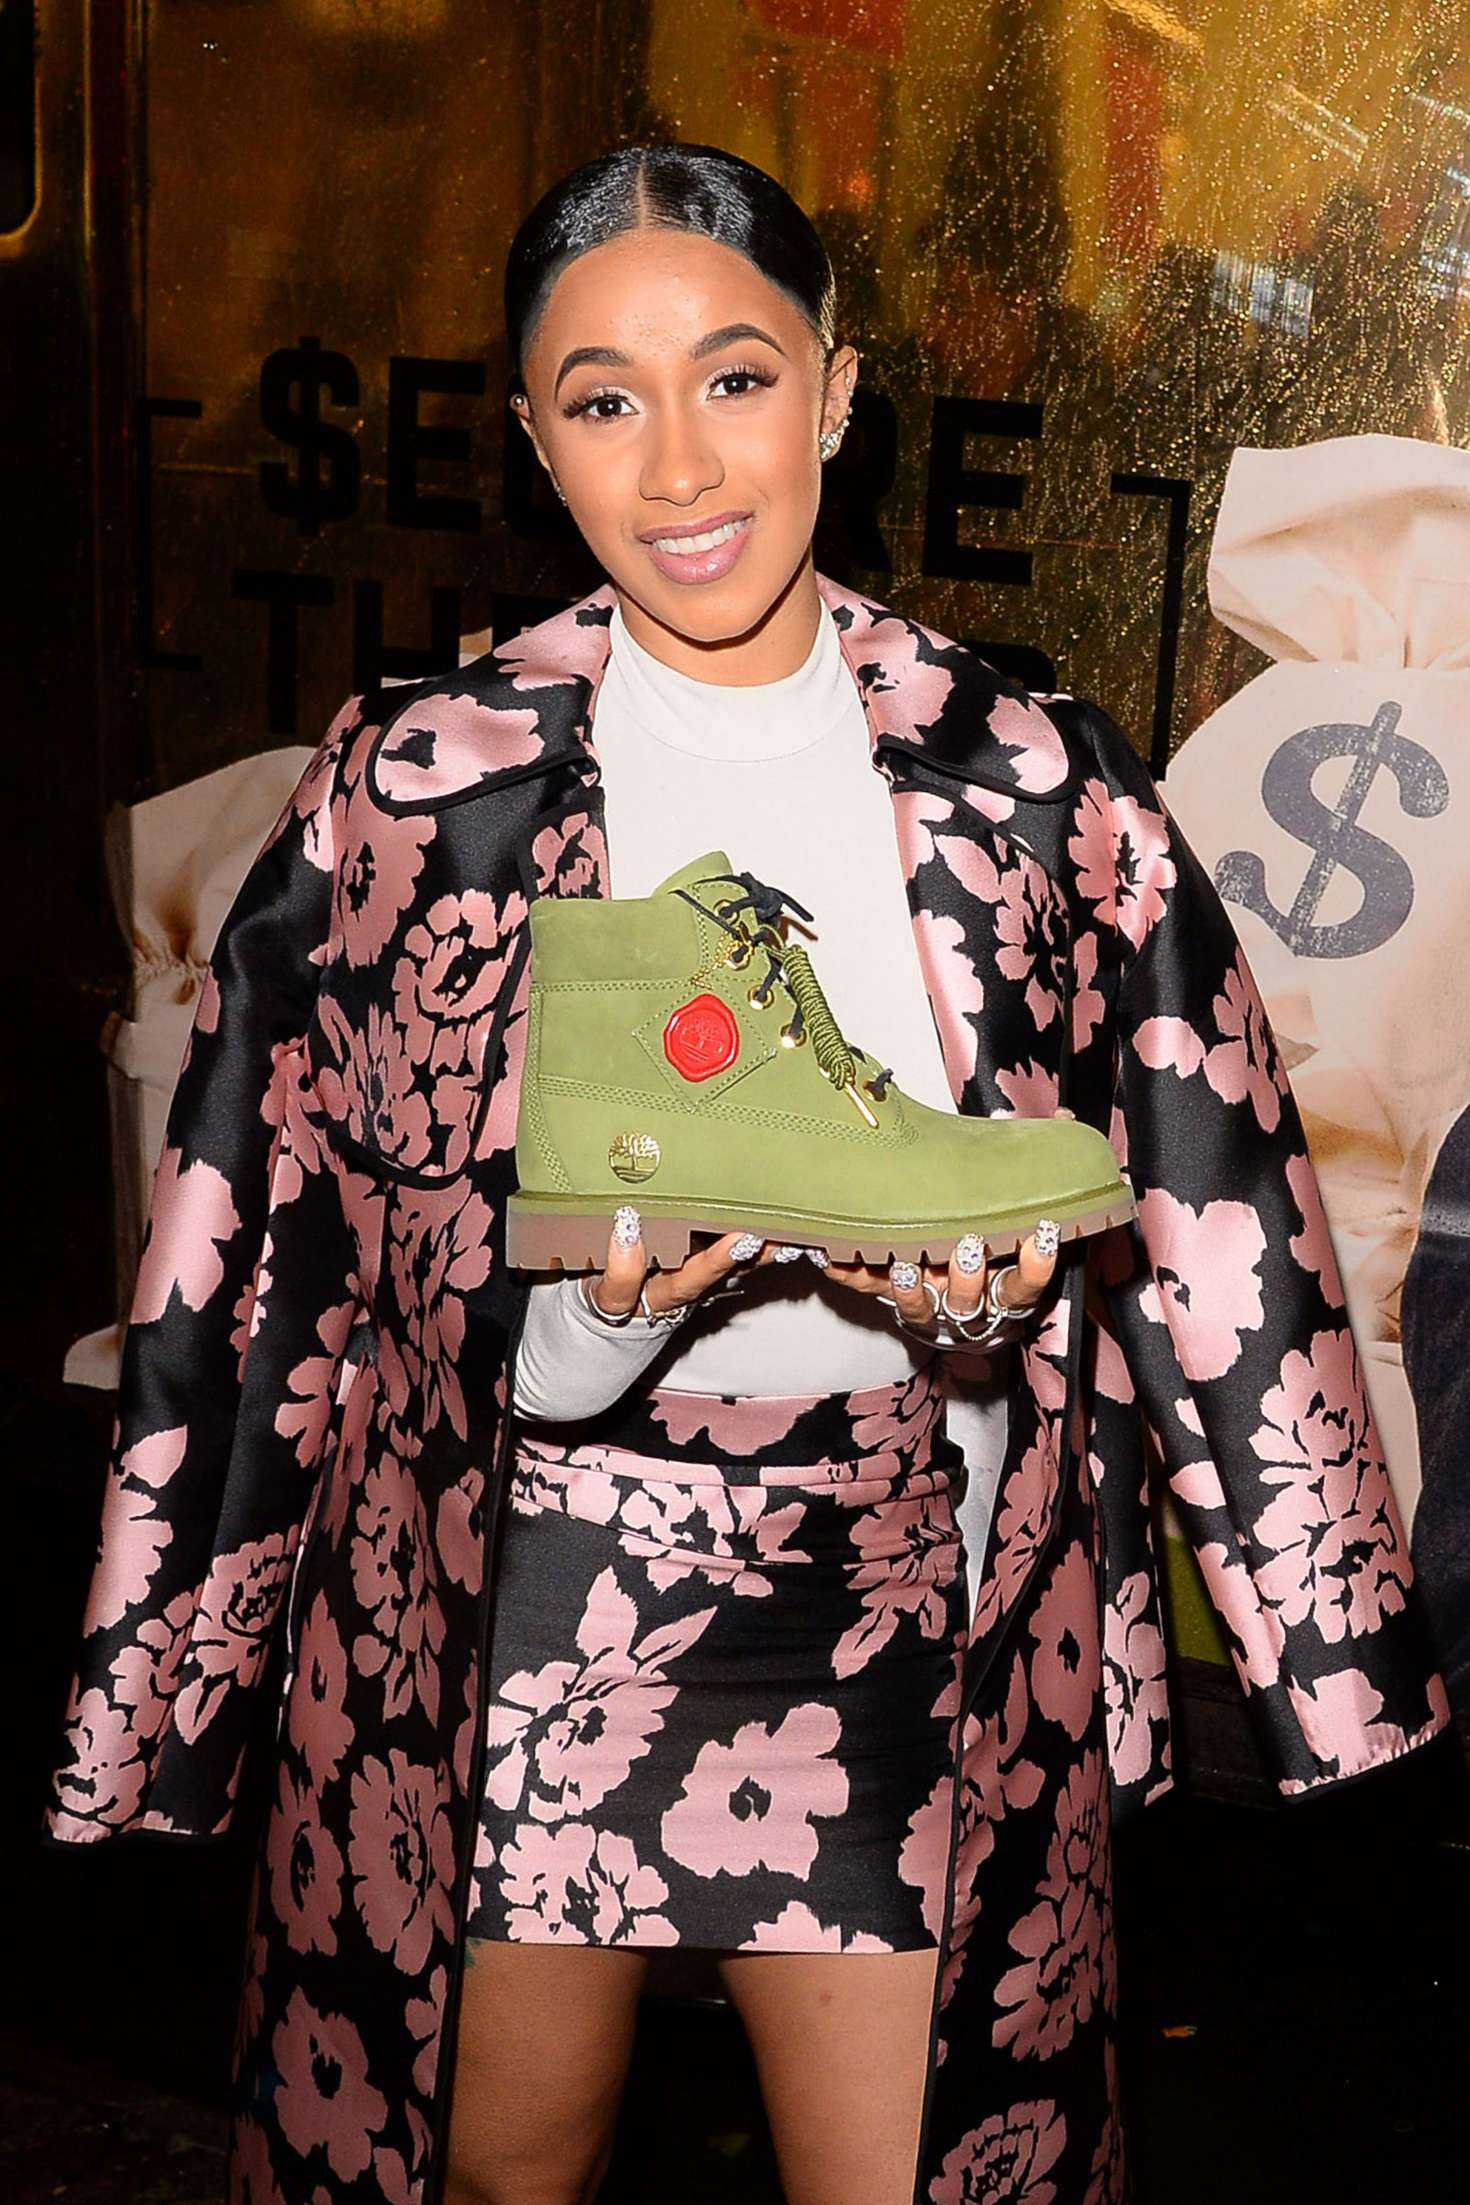 Cardi B - Finishes up her first Facebook Live interview in New York